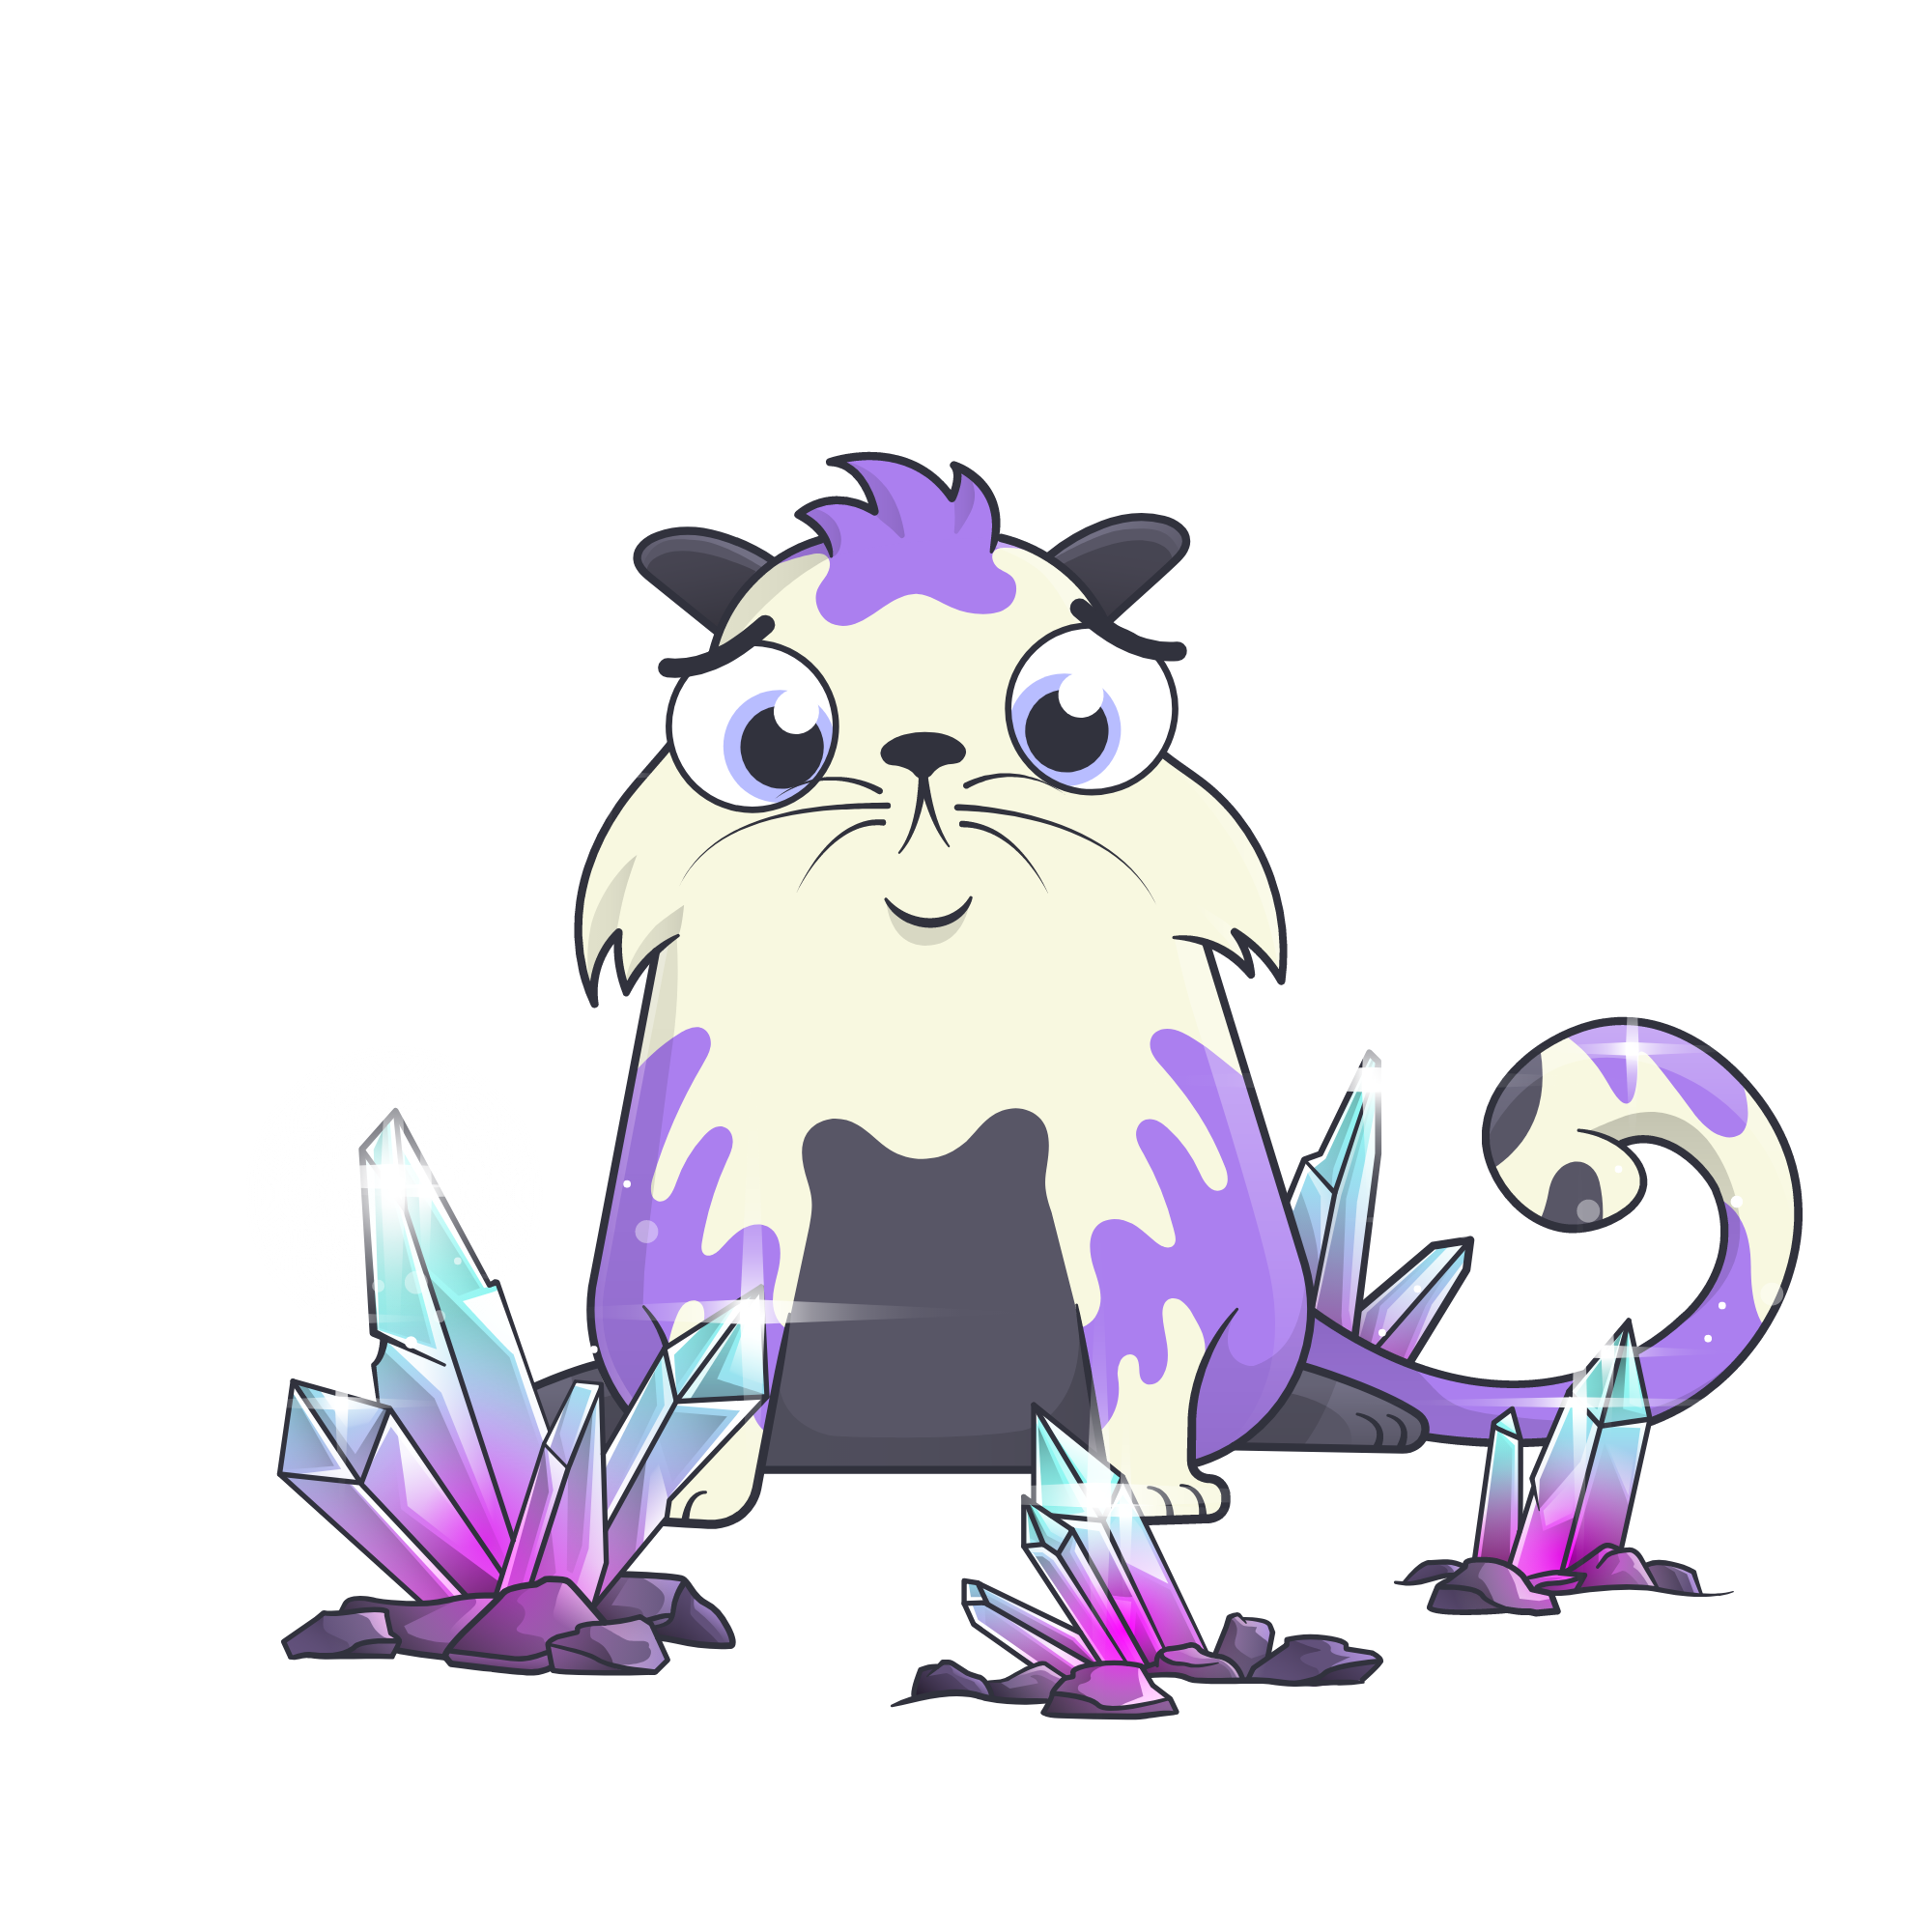 cryptokitty #1944573